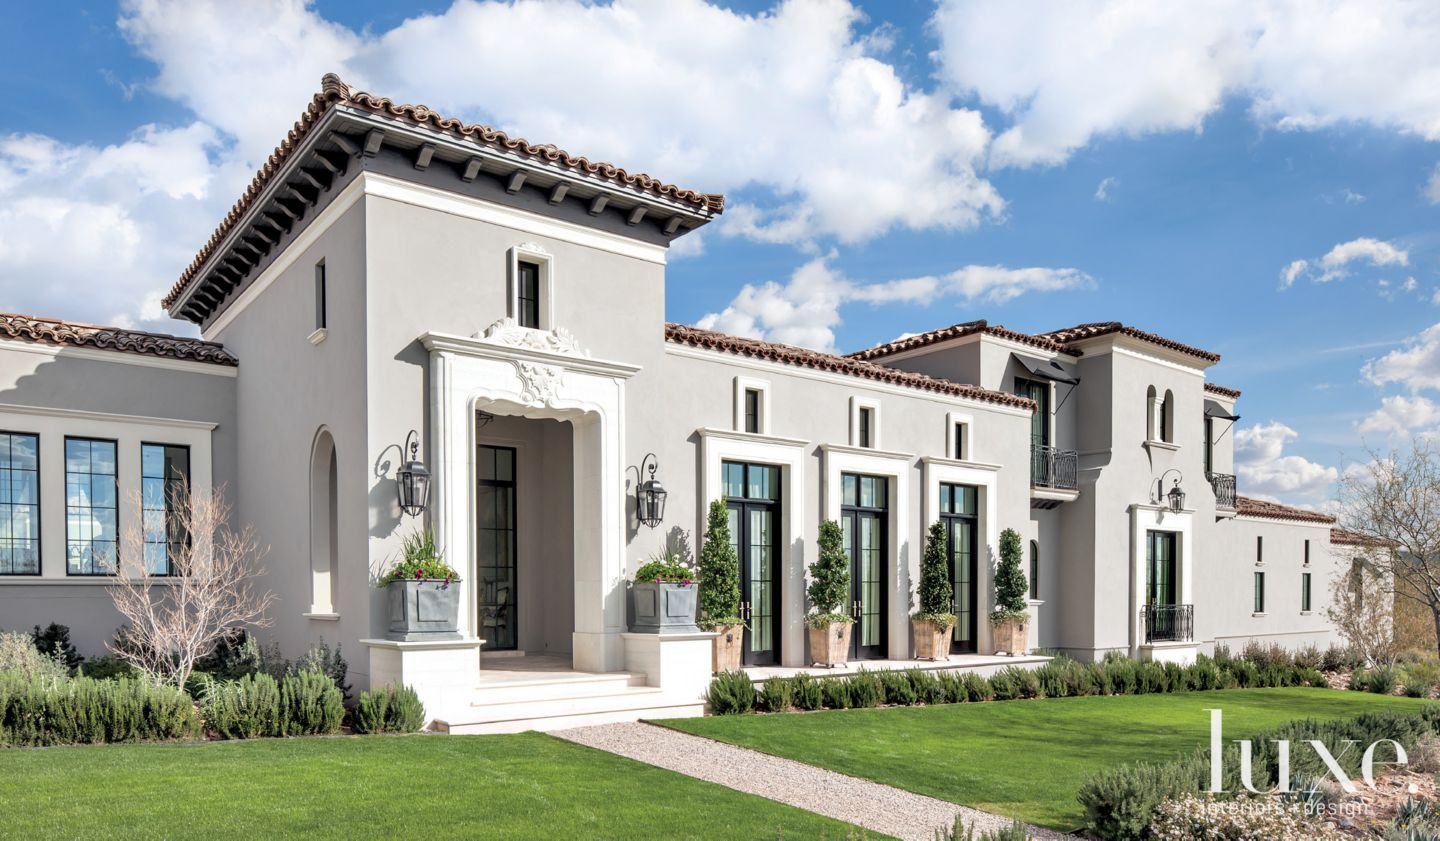 Best The Structure With Its Pristine Stucco Façade Clay Tile 400 x 300